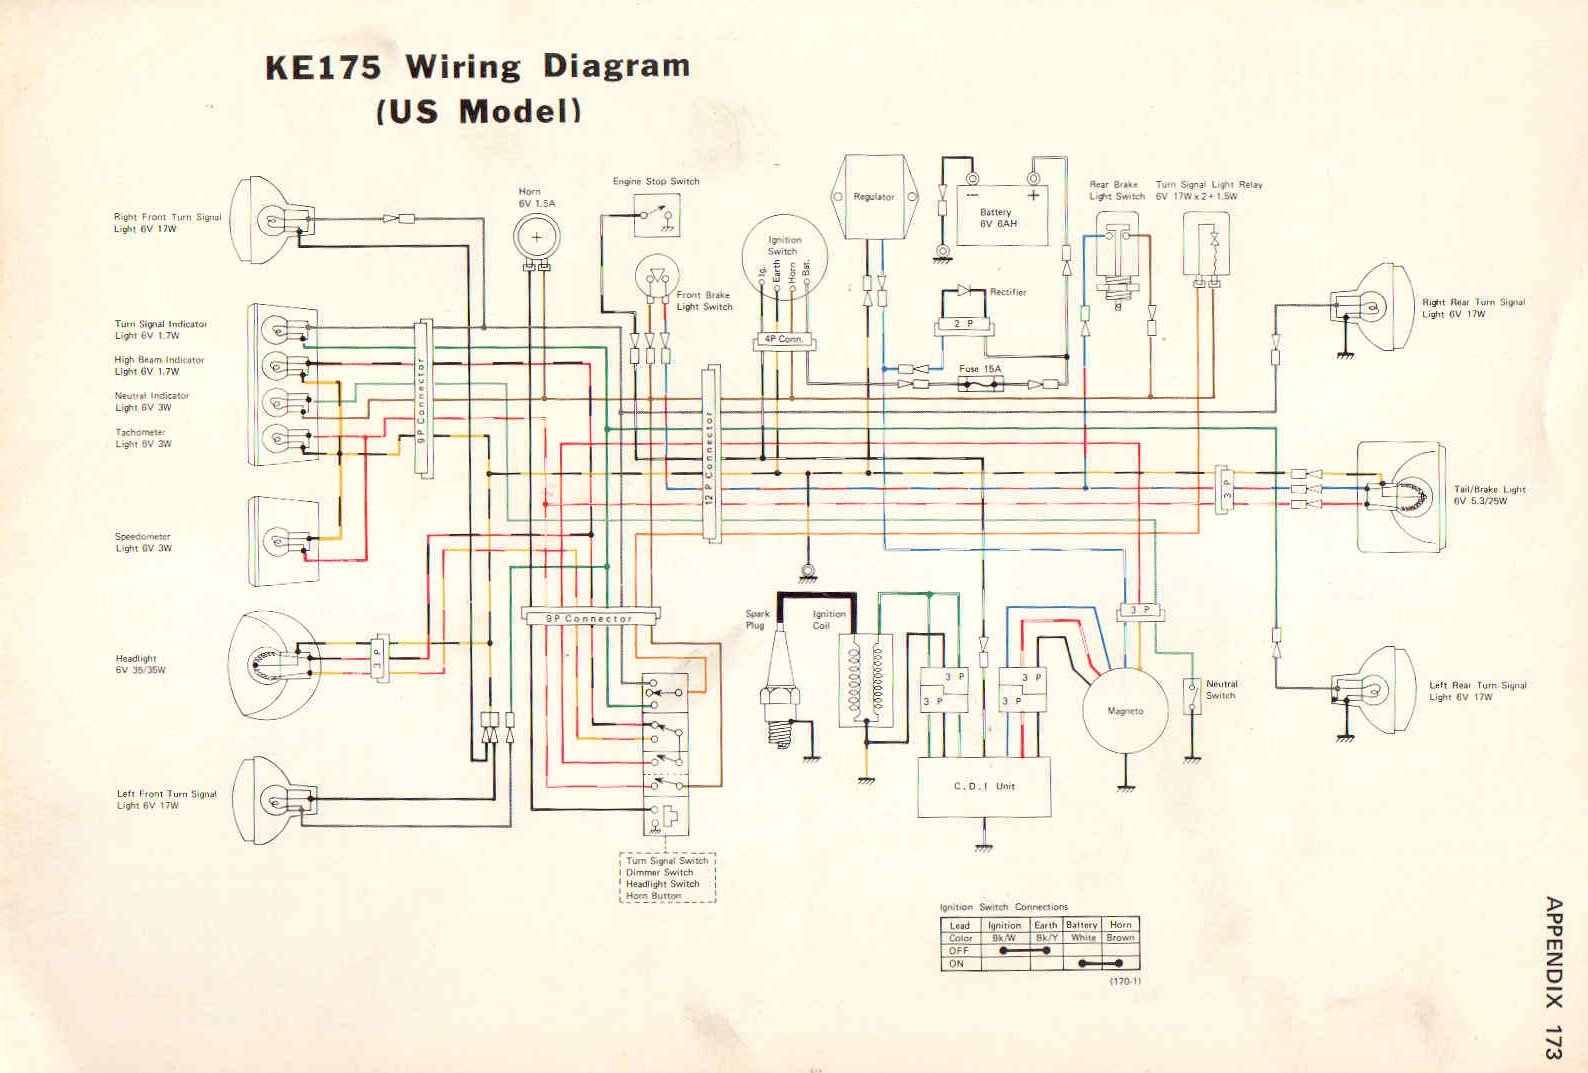 1976 Kawasaki Km 100 Wiring Diagram Worksheet And For Bayou 300 Ke175 Schematics Rh Mychampagnedaze Com Klf